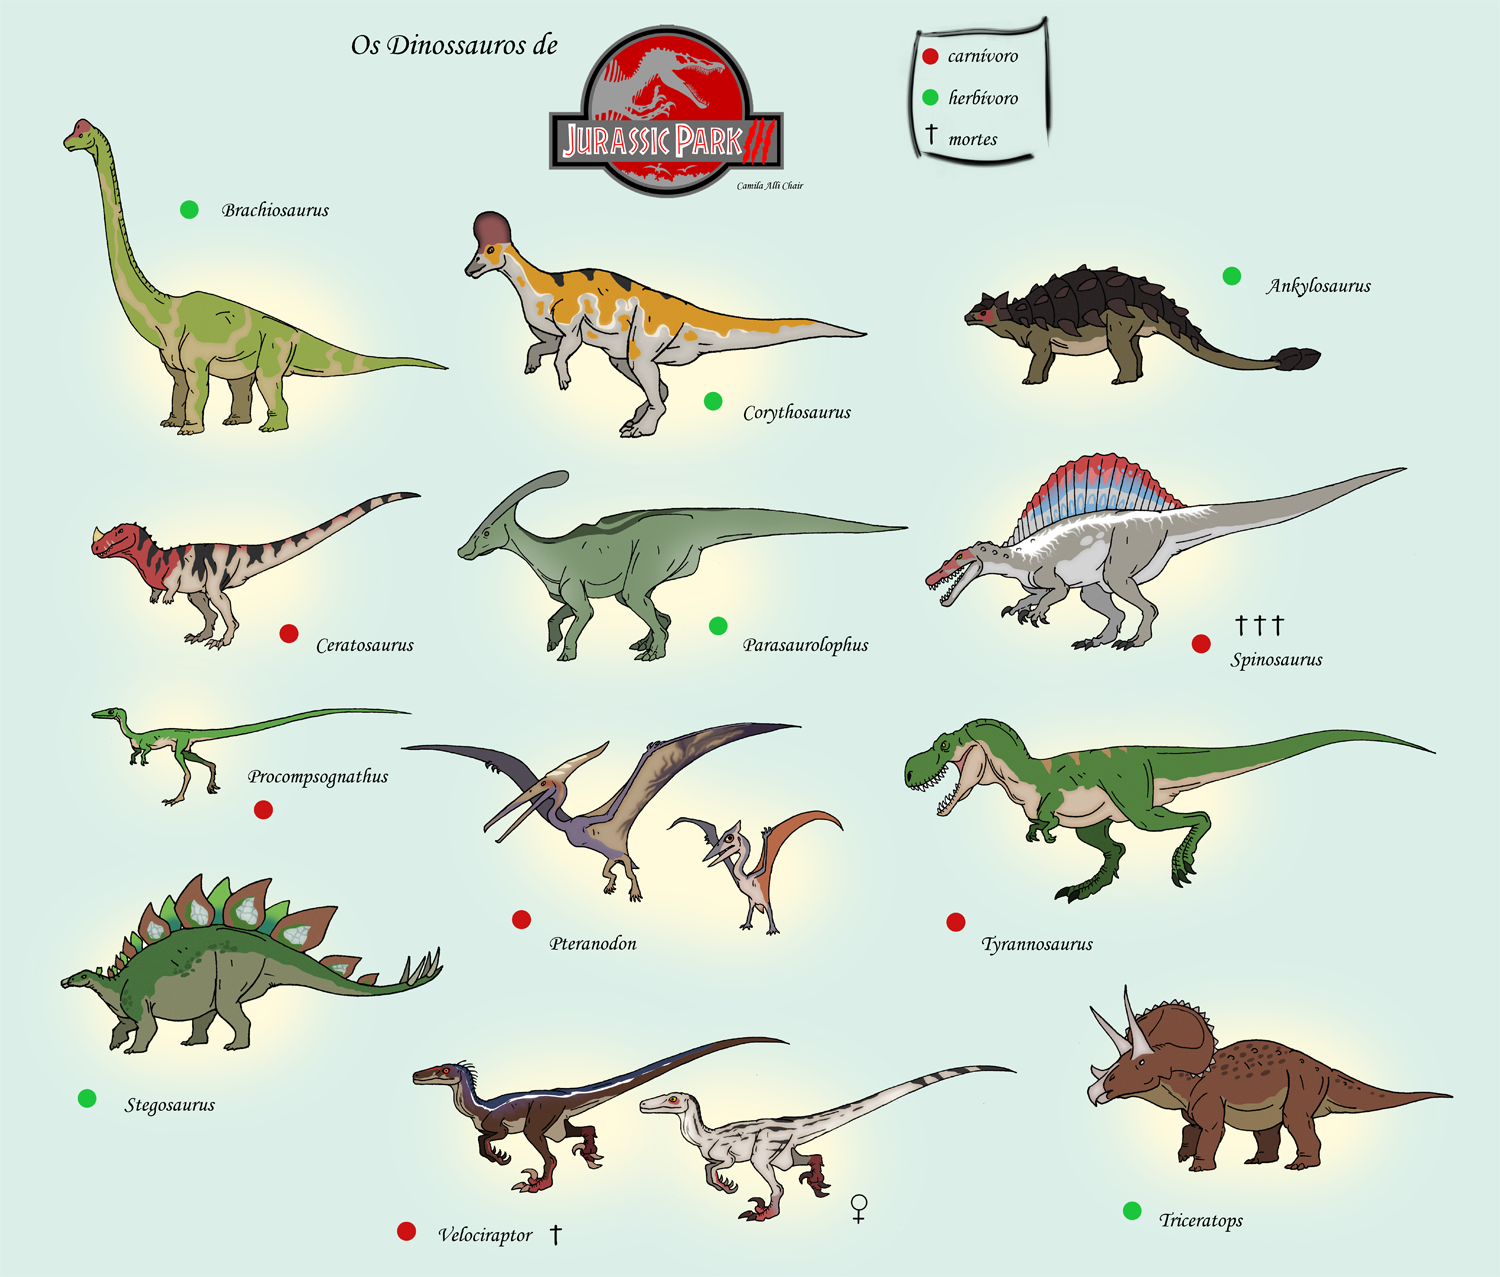 Dinosaurs list and pictures Types of Dinosaurs - List of Dinosaur Kinds for Kids